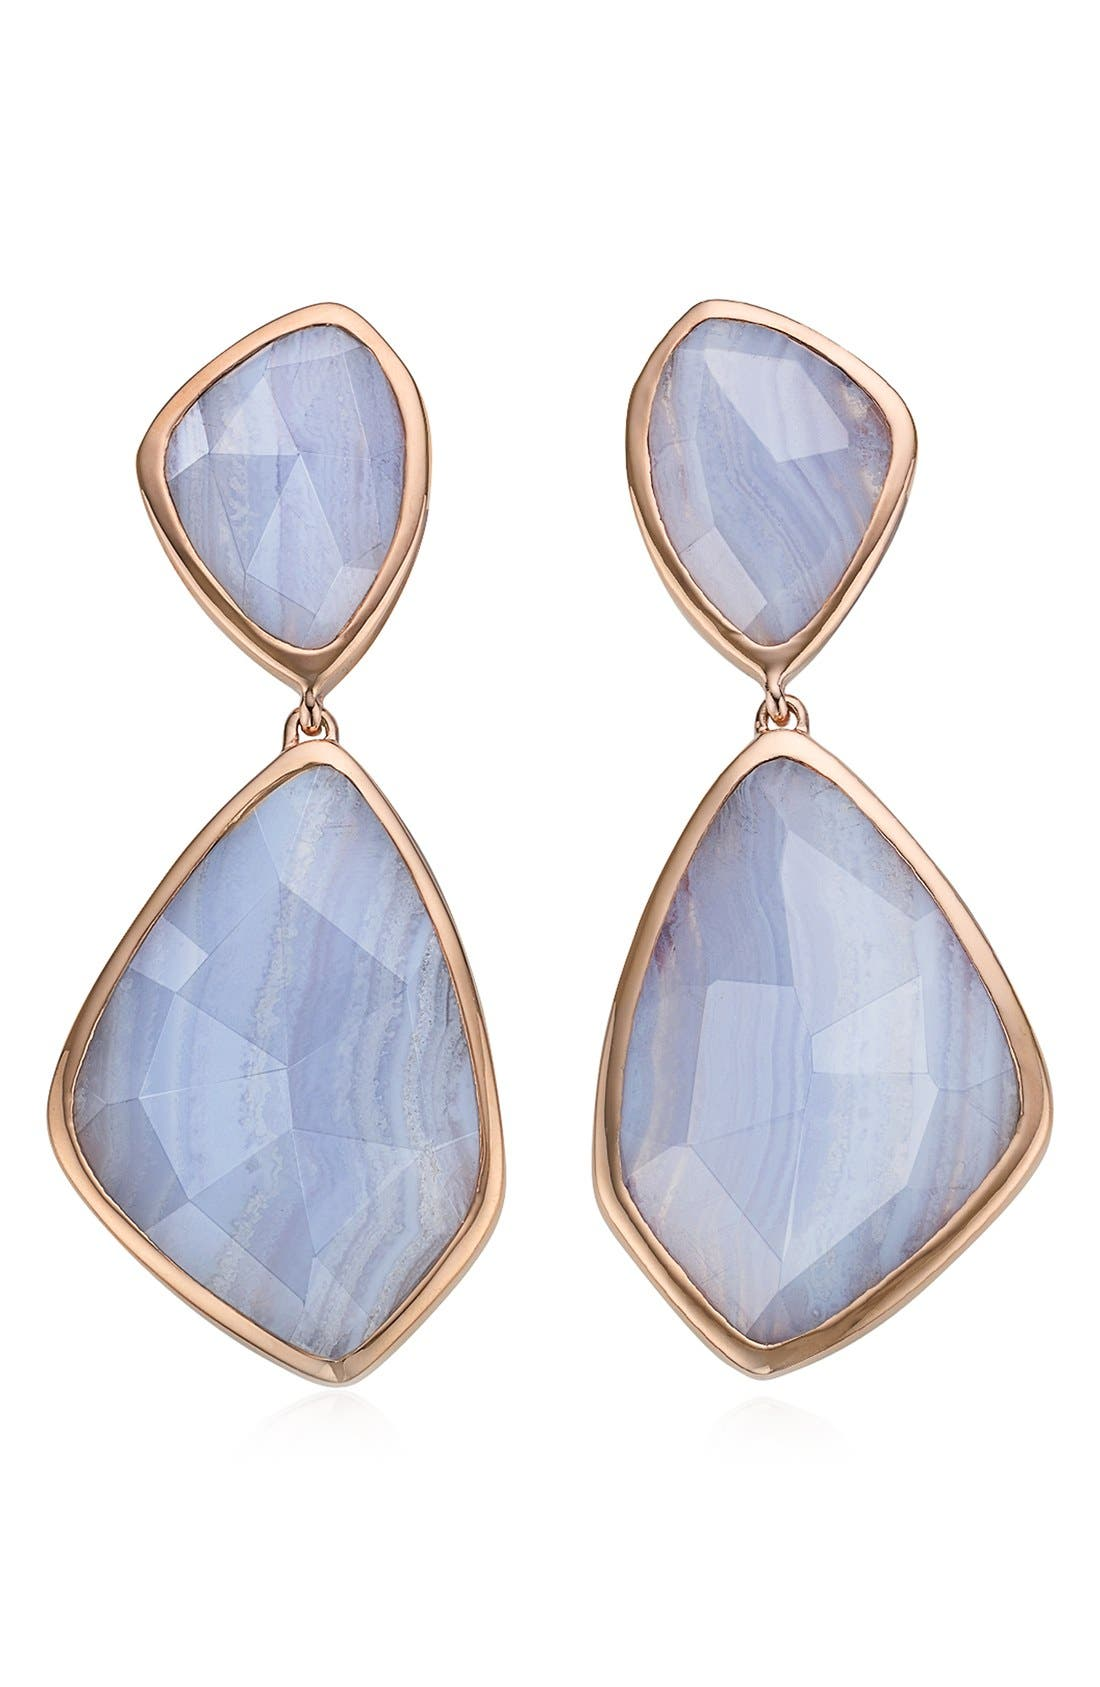 Alternate Image 1 Selected - Monica Vinader 'Siren' Semiprecious Stone Double Drop Earrings